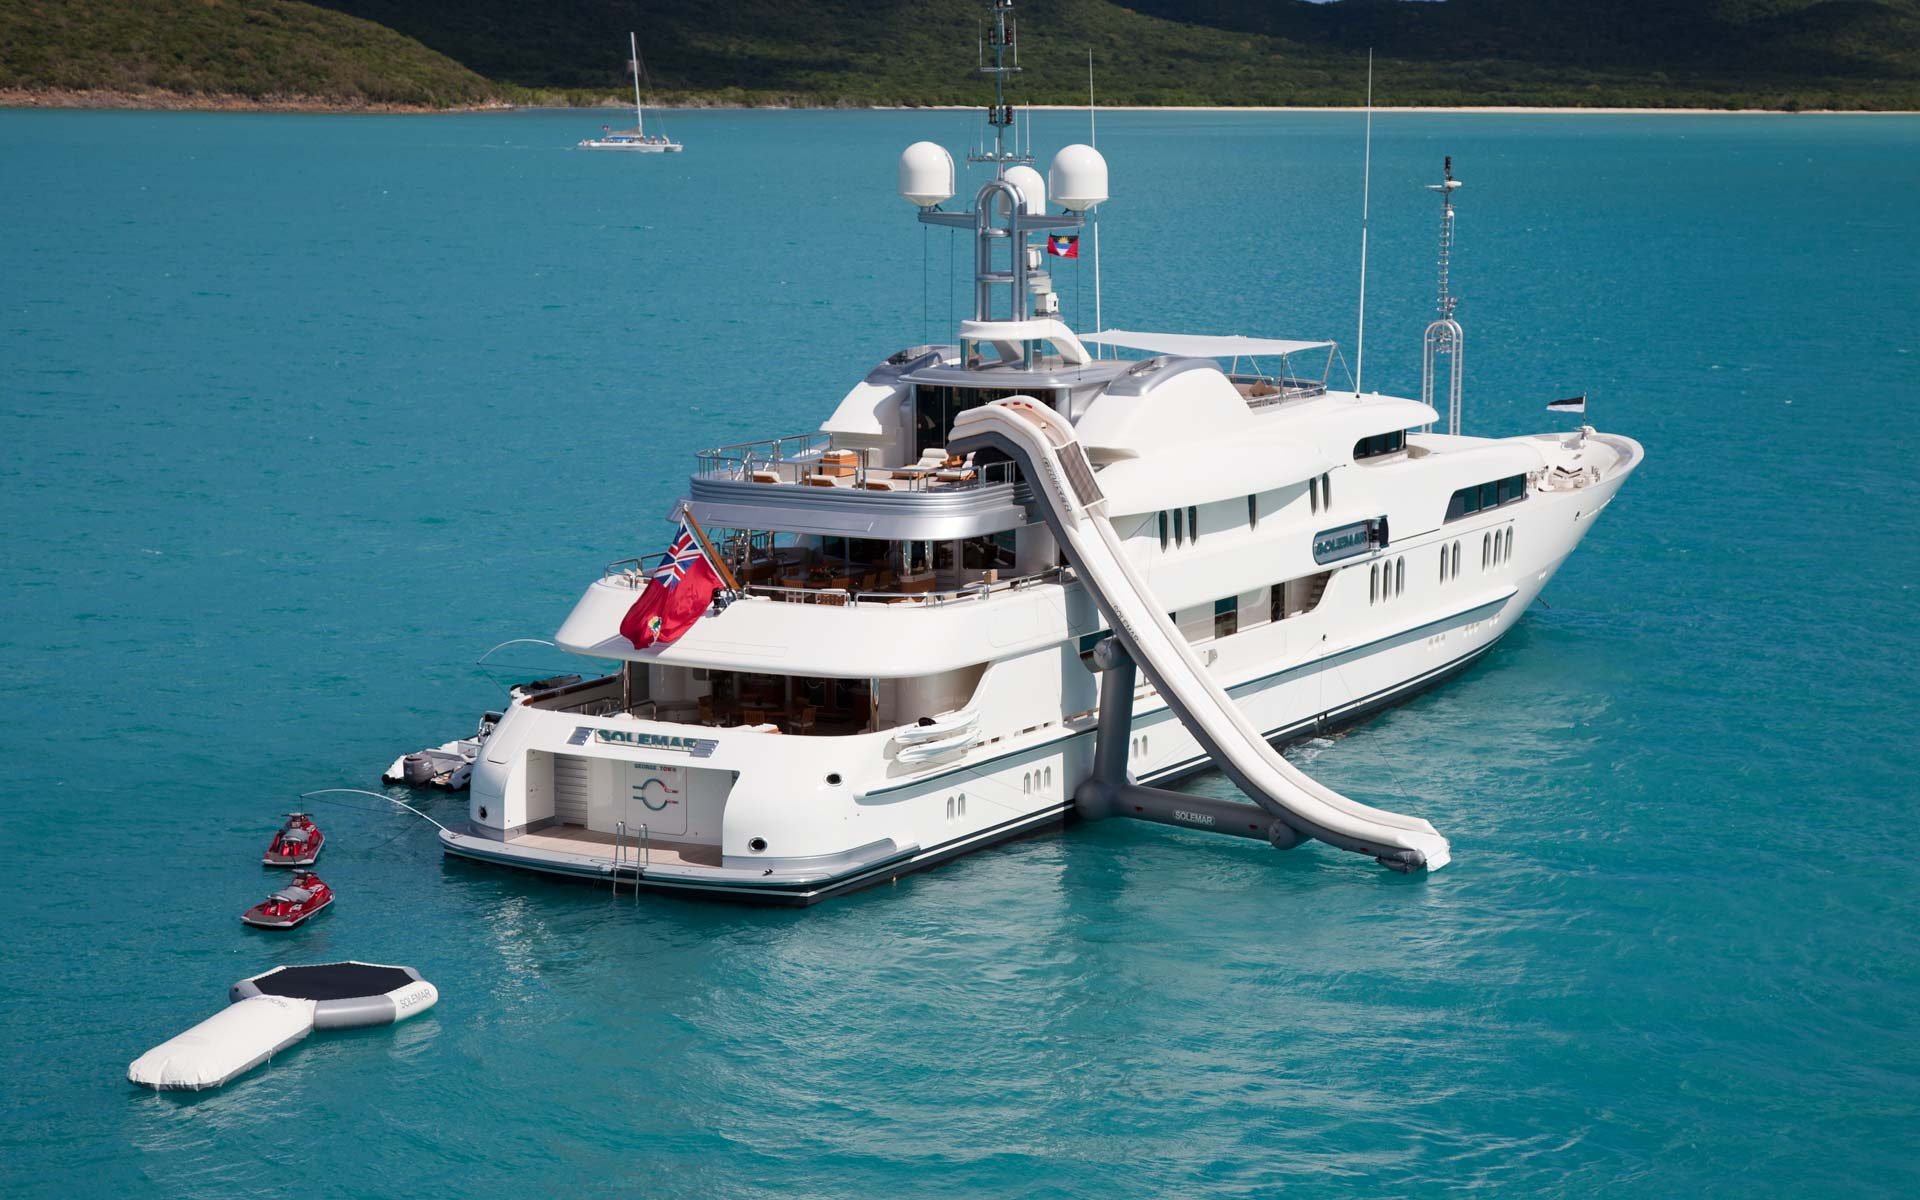 http://weboatlovers.wehomeowners.com/wp-content/uploads/2016/07/Yacht-Photo_003.jpg